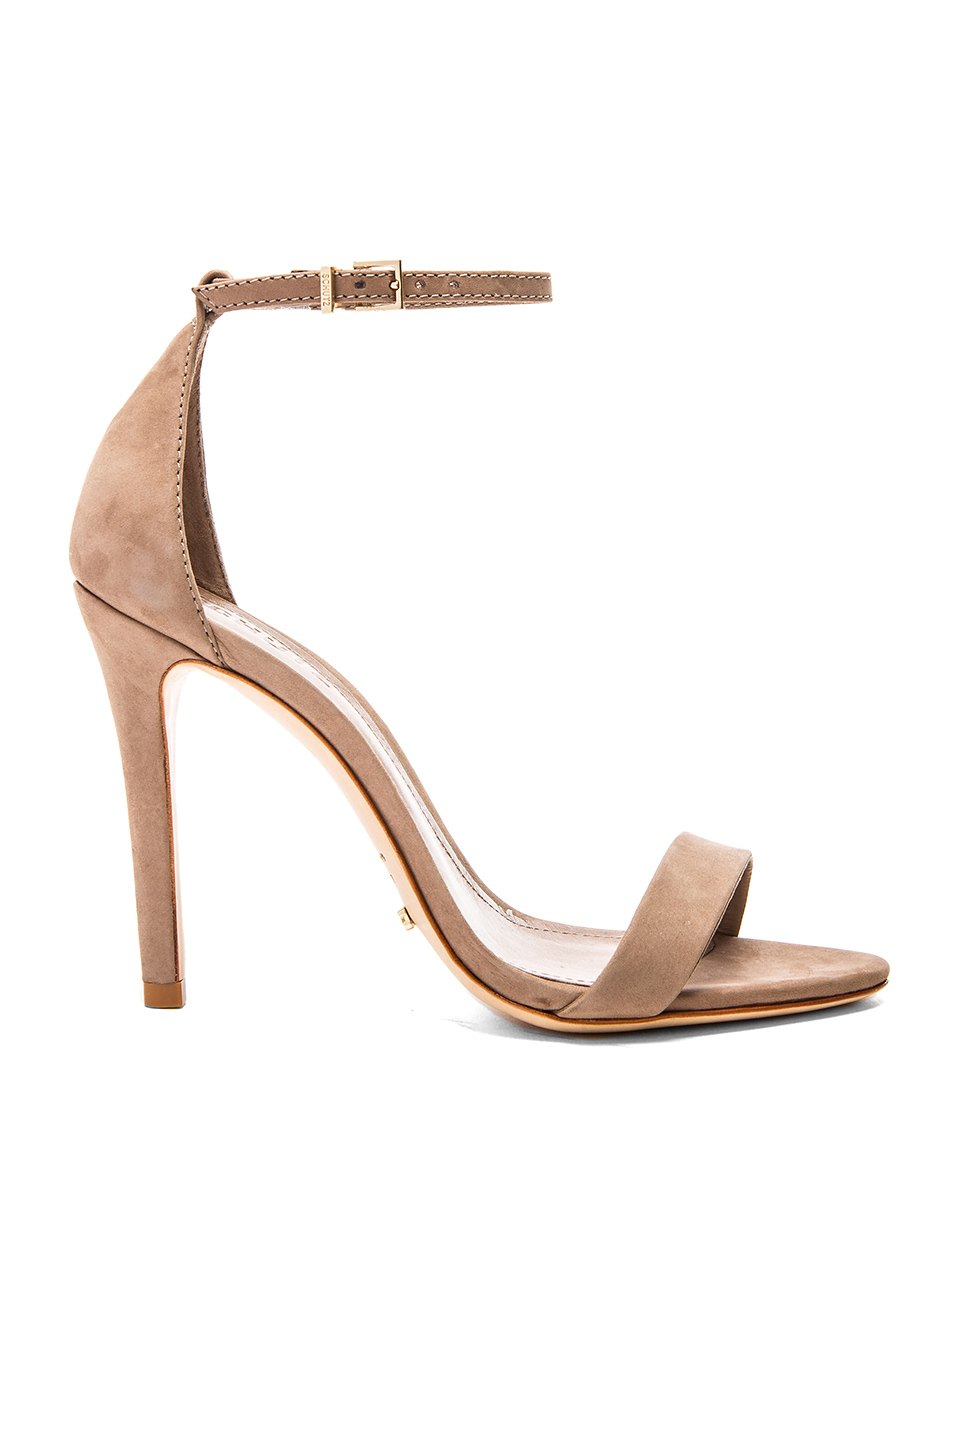 Schutz Cadey Lee Heel in Neutral